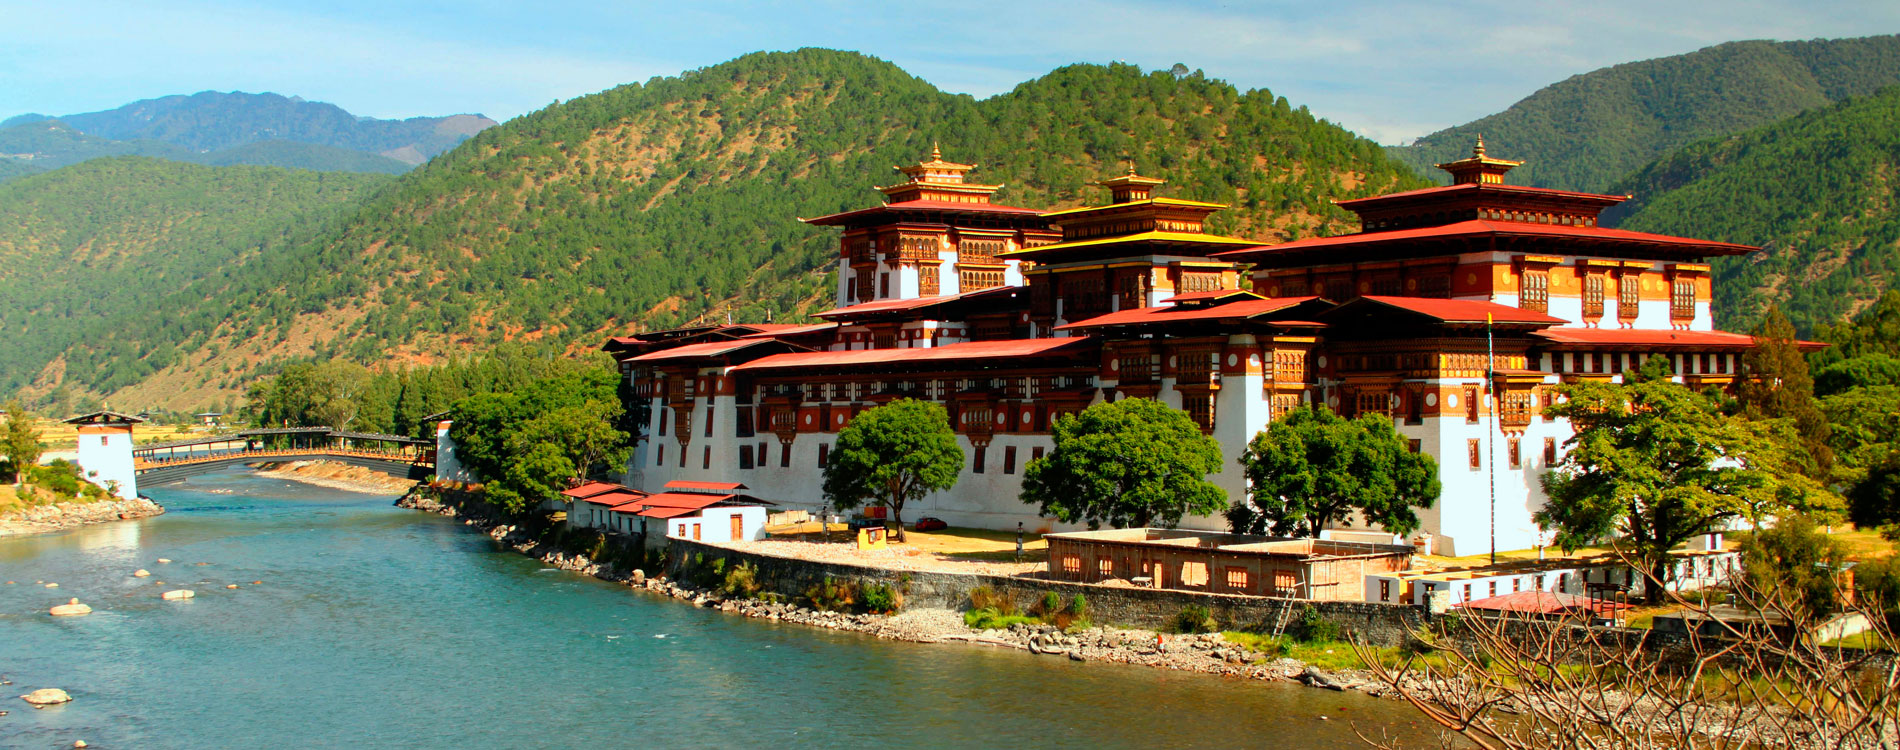 Bhutan Tourism Agency - Amedewa Bhutan Tours And Trek